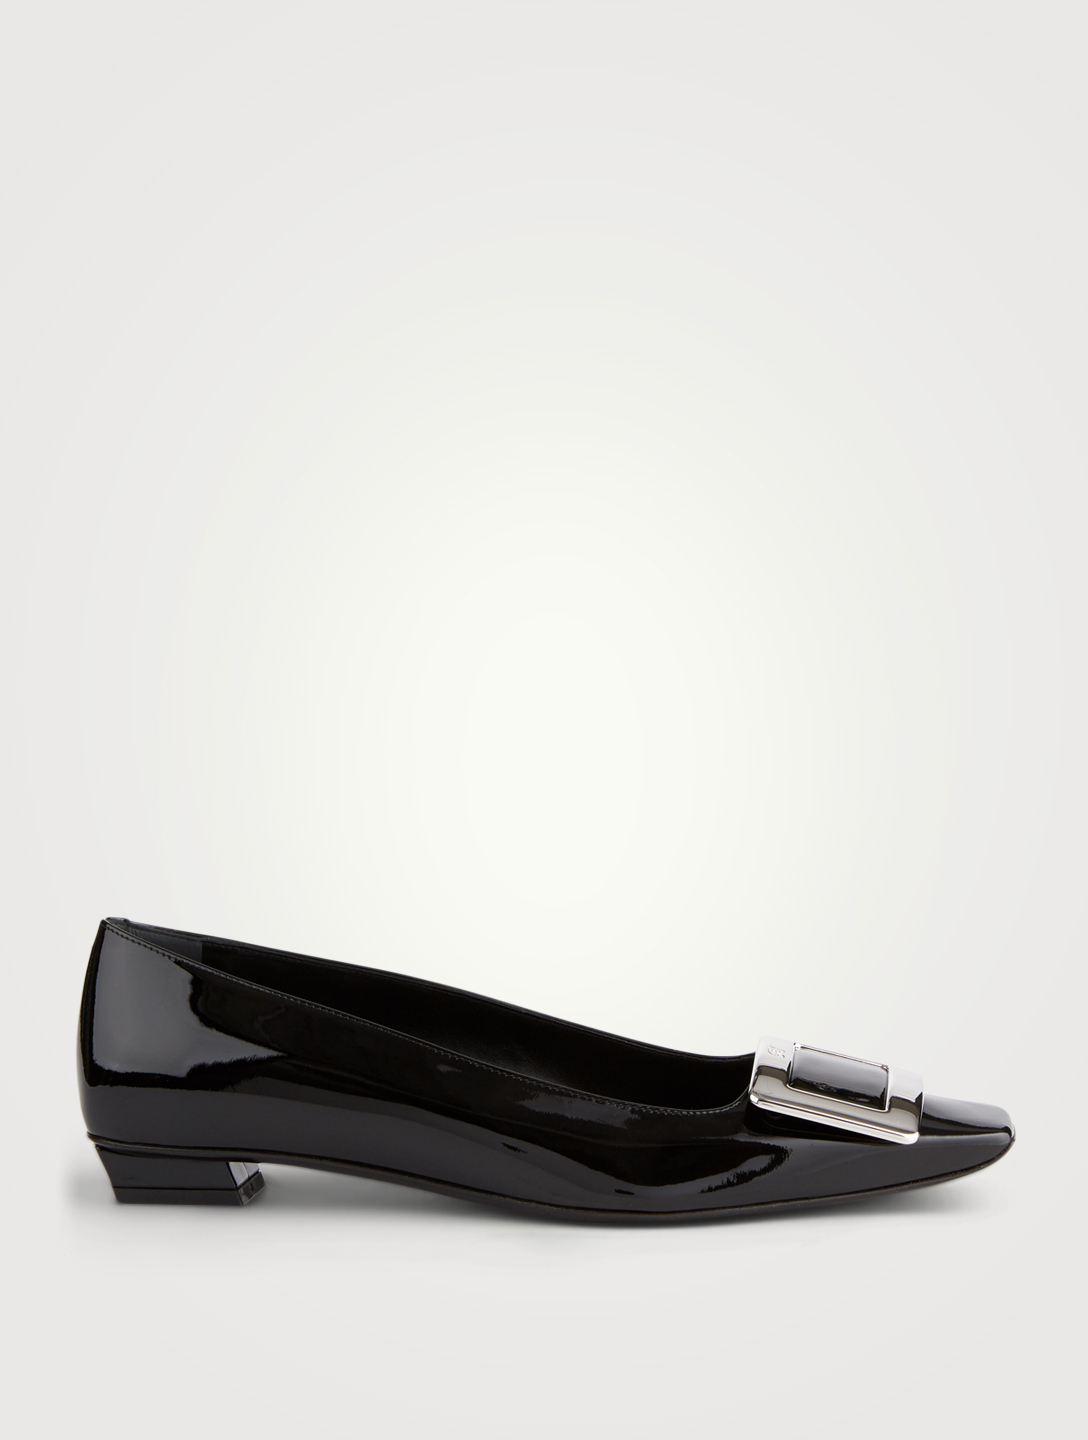 ROGER VIVIER Belle Vivier 25 Patent Leather Pumps Women's Black